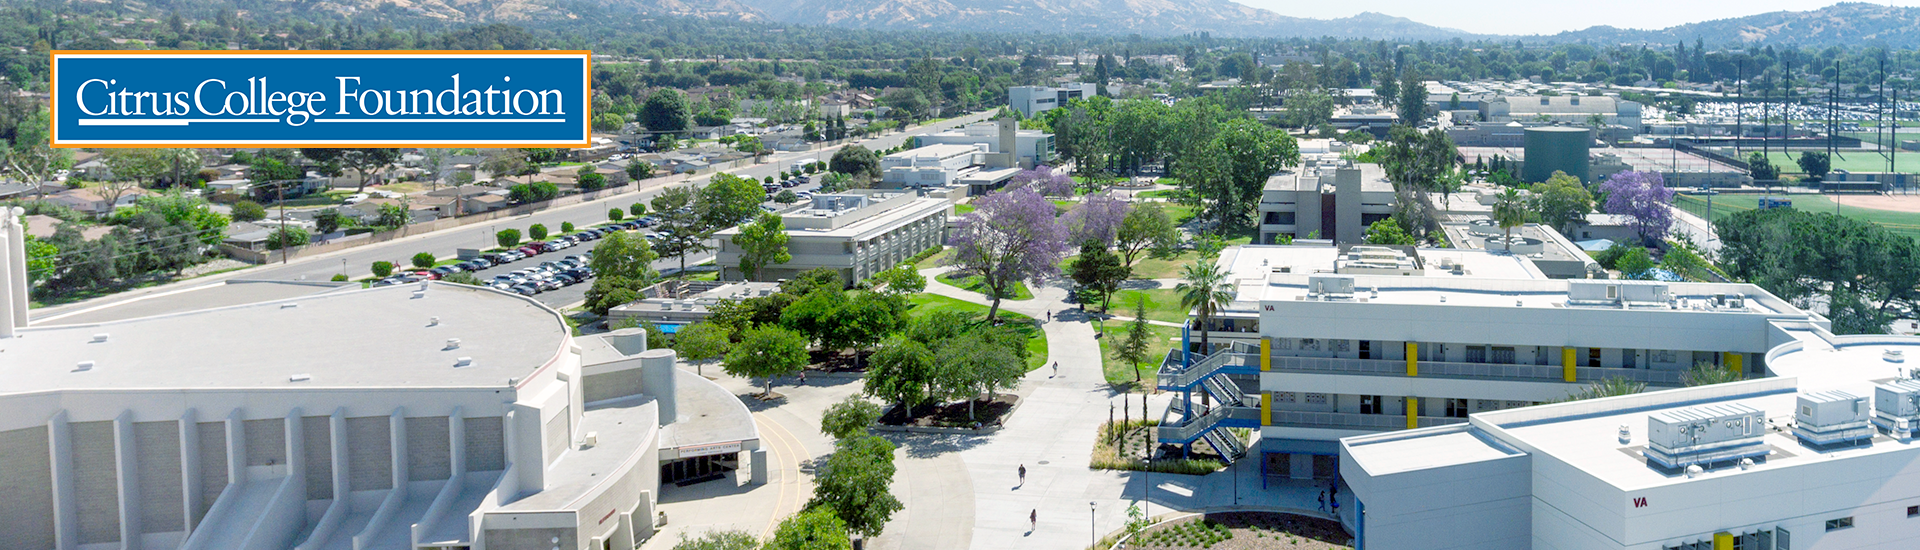 aerial shot of the Citrus College campus facing east with the Citrus College Foundation logo